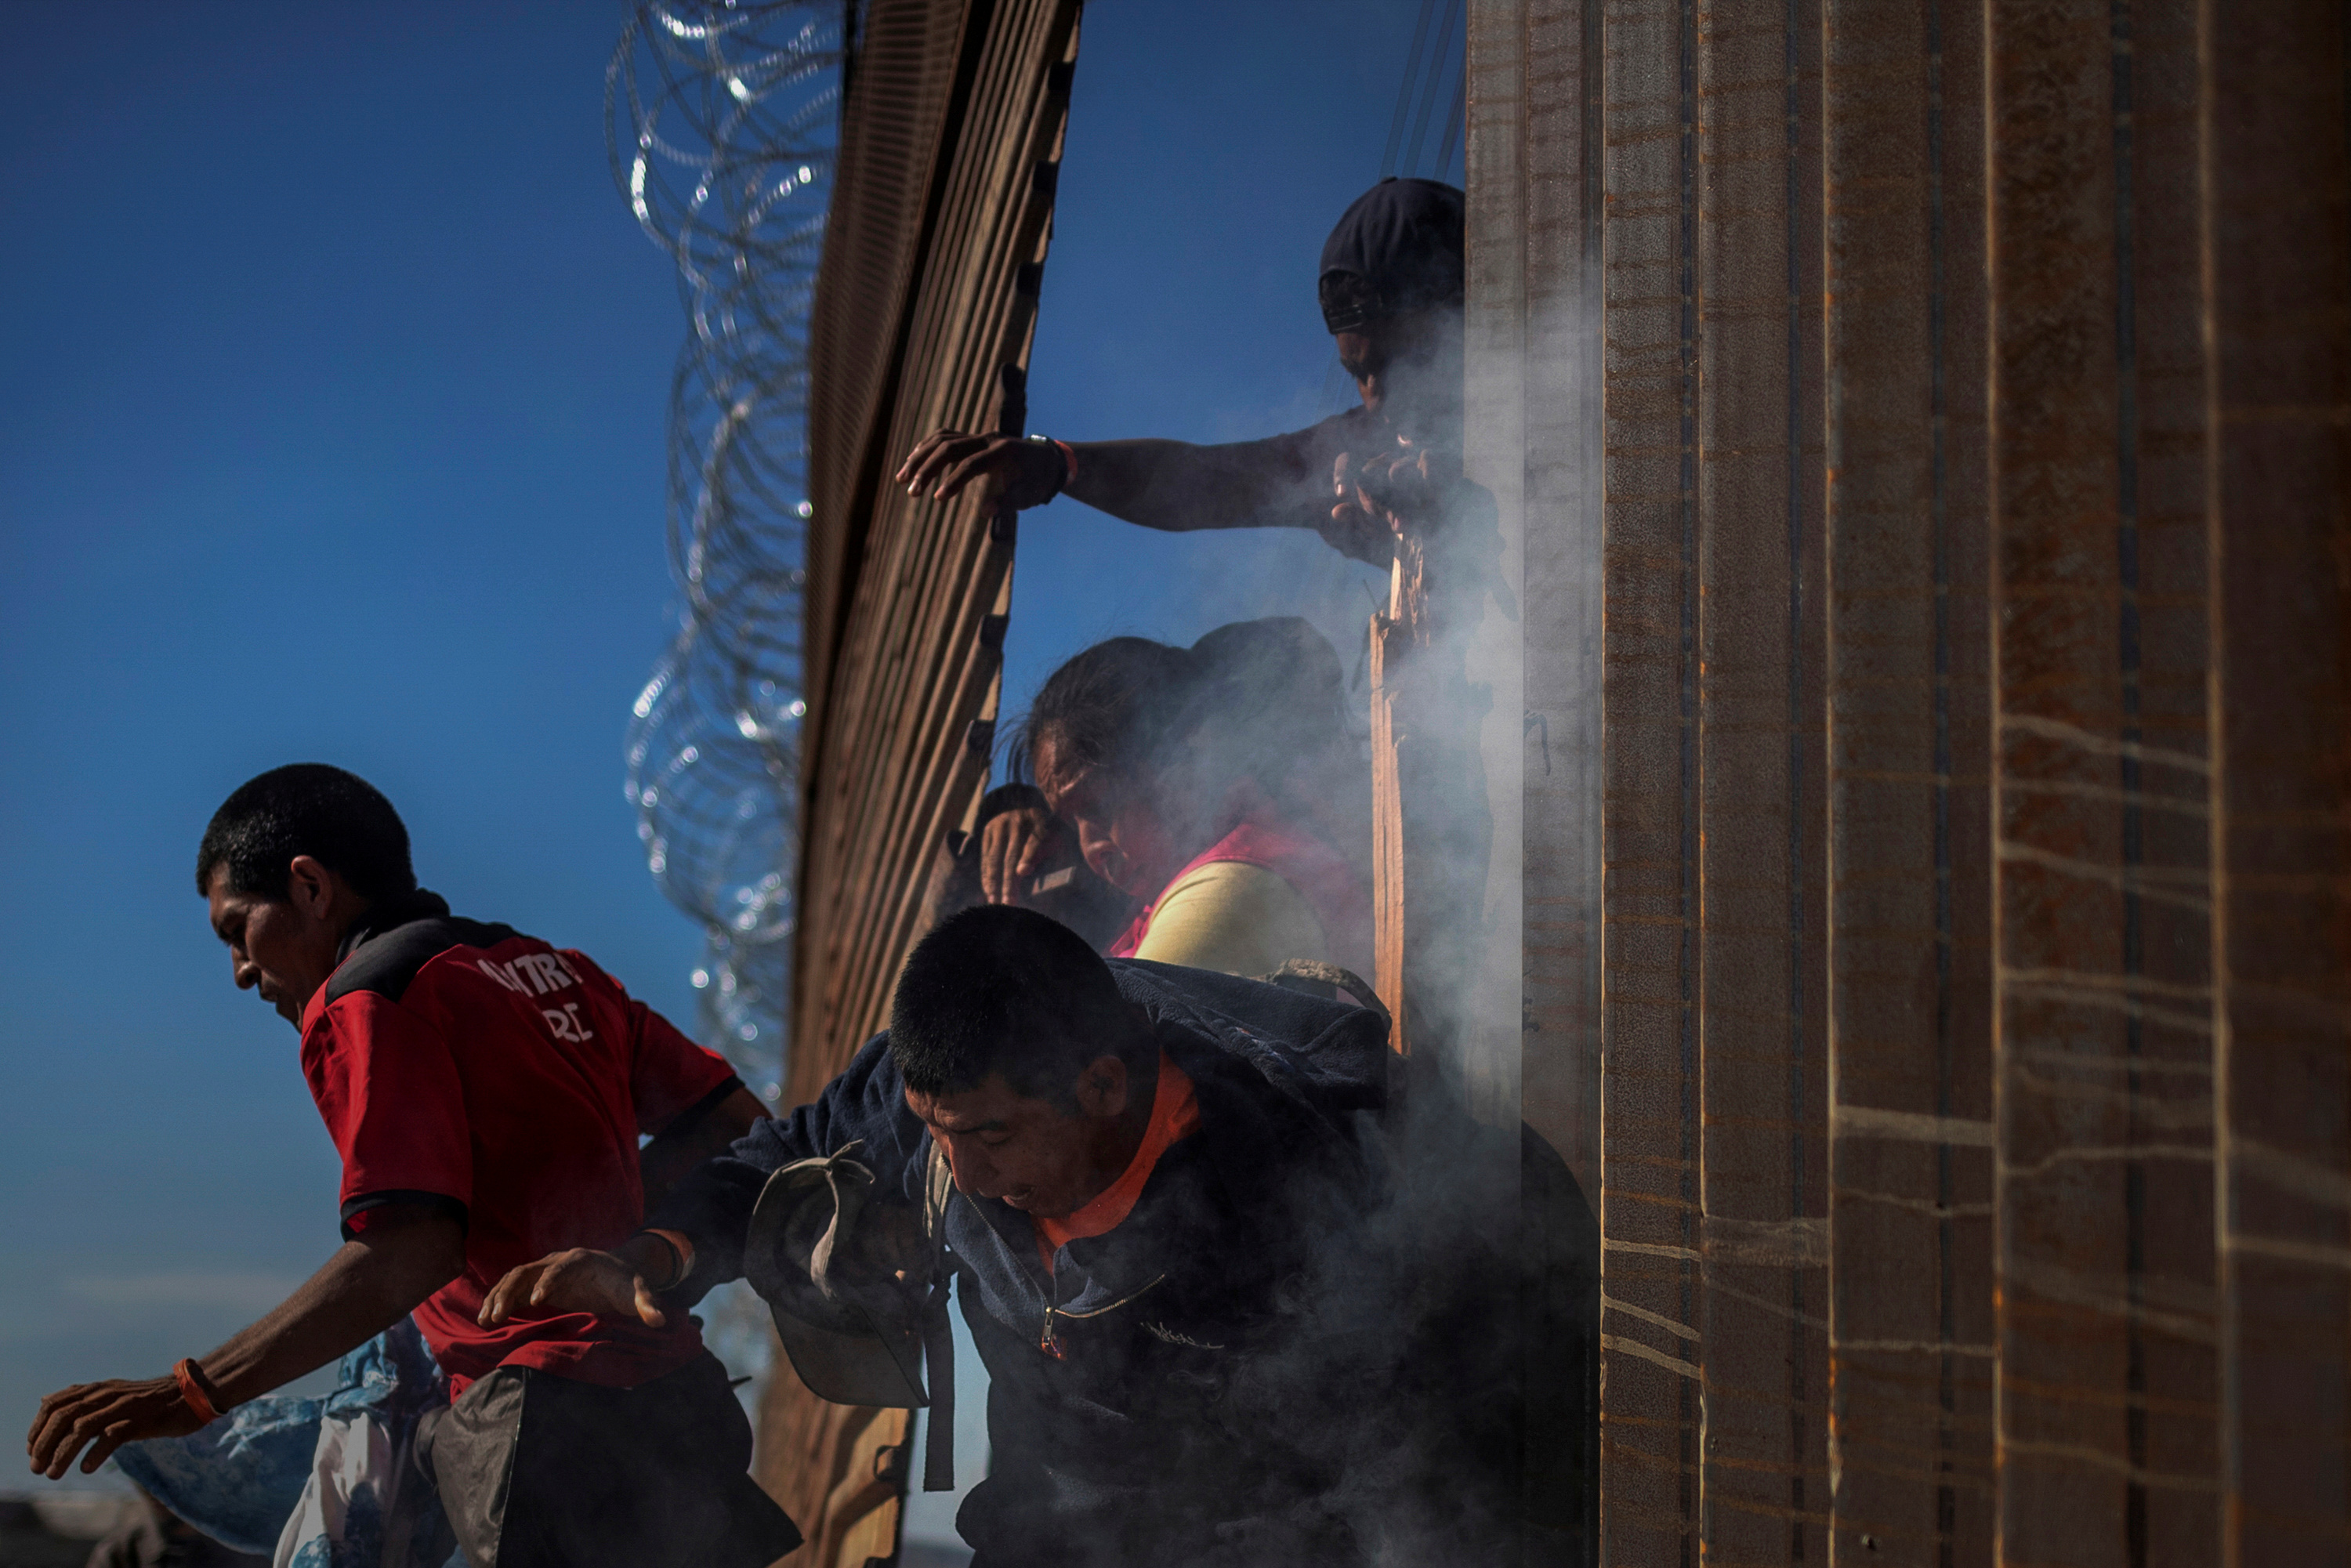 Migrants, part of a caravan of thousands from Central America trying to reach the United States, return to Mexico after being hit by tear gas by U.S. Customs and Border Protection officials after attempting to illegally cross the border wall into the United States in Tijuana, Mexico November 25, 2018. REUTERS/Adrees Latif.